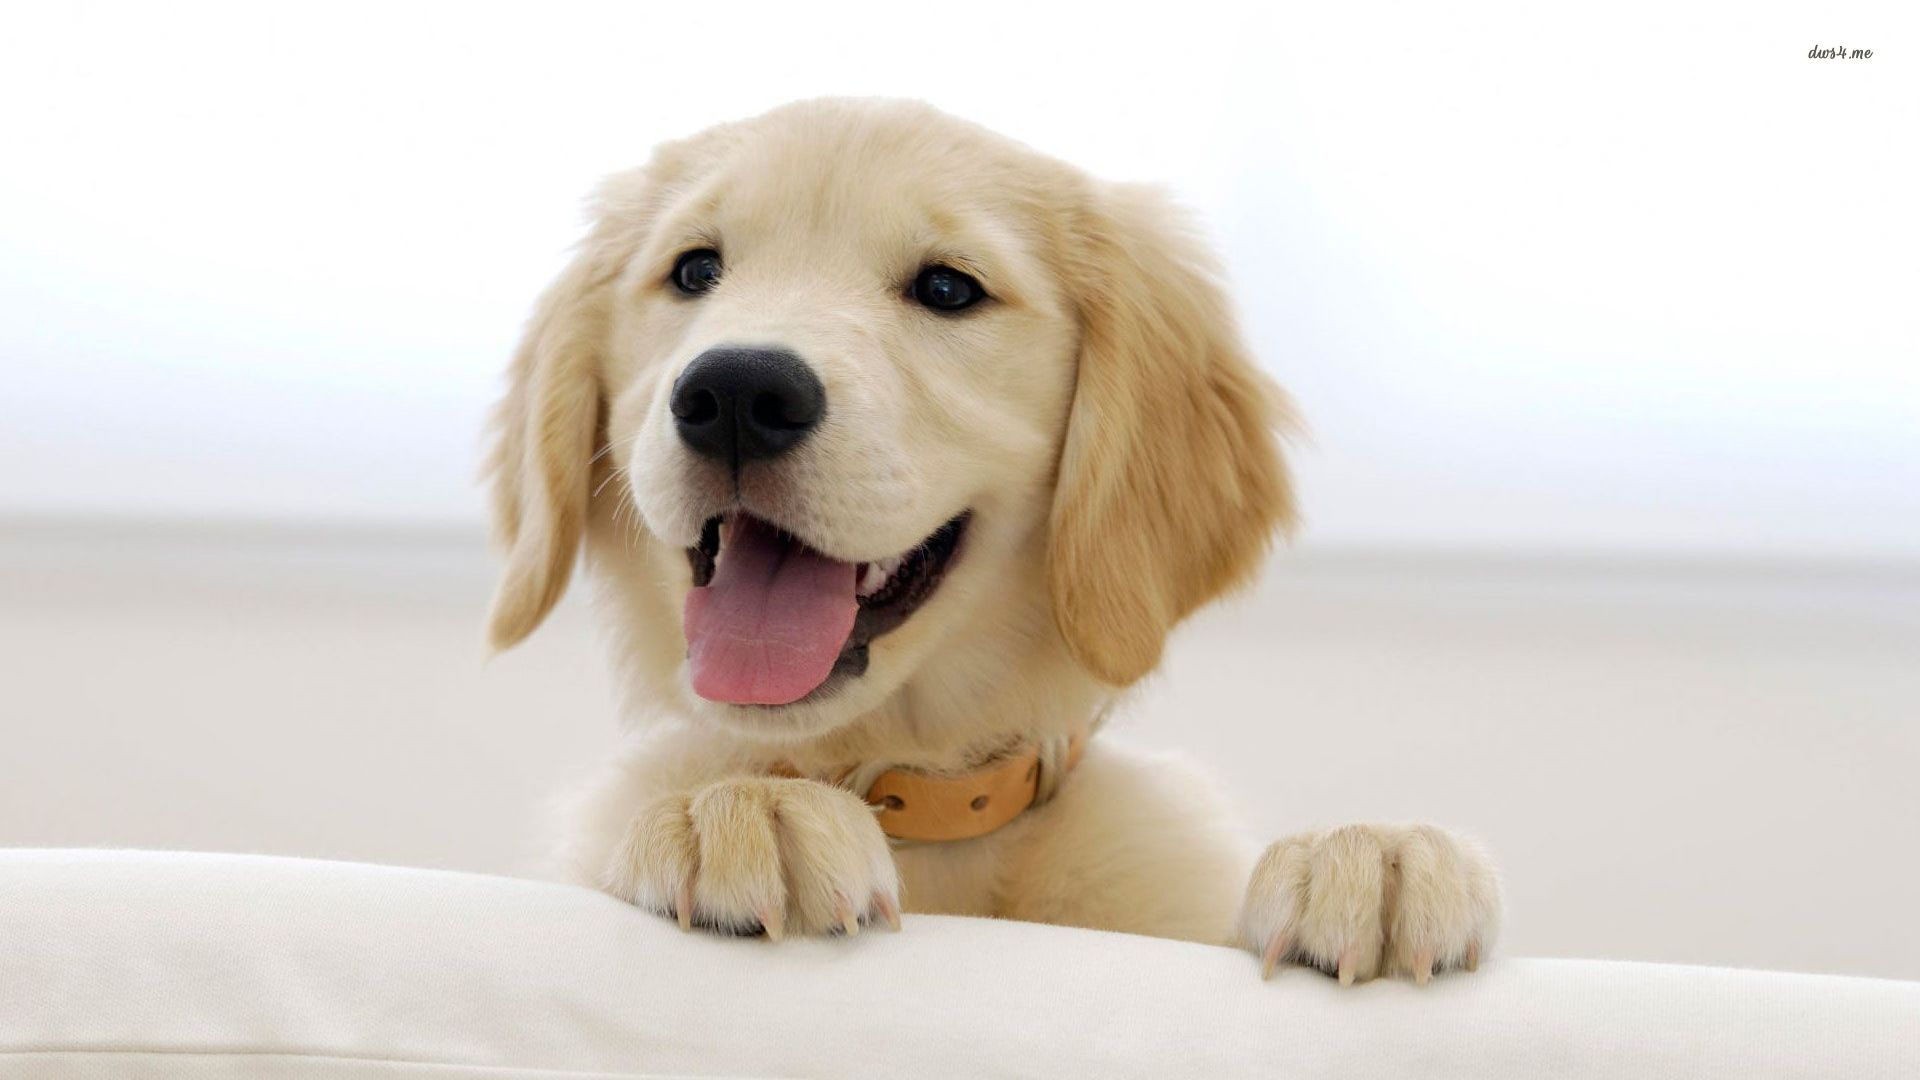 Wallpaper Cute Dogs Puppies